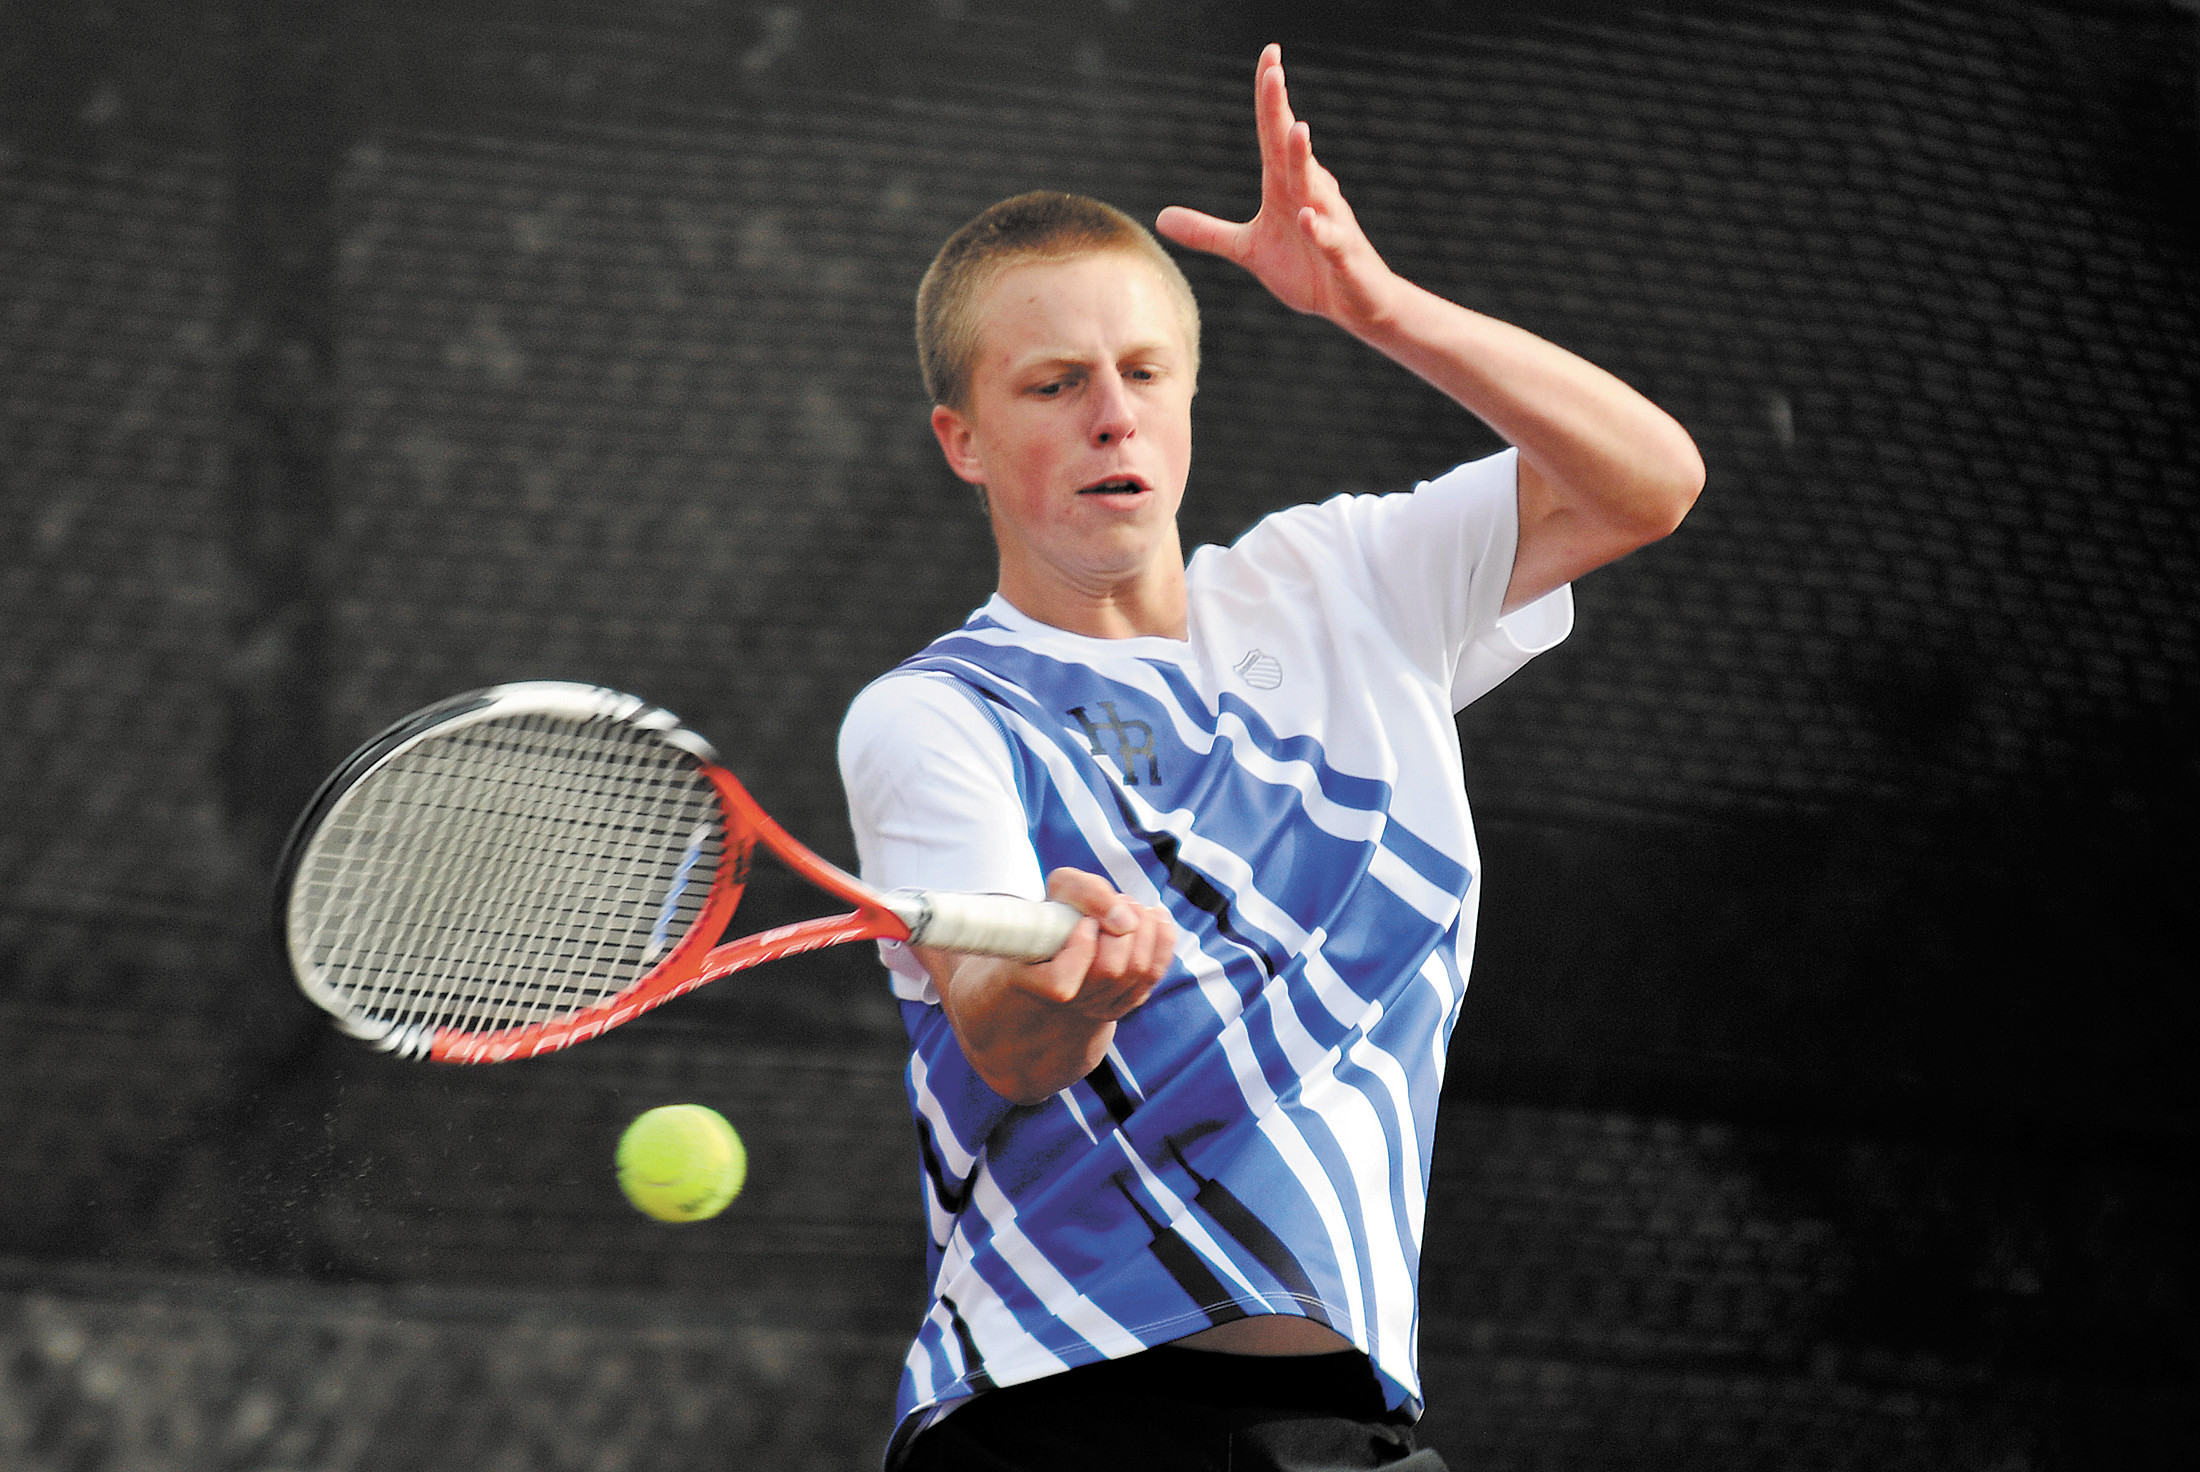 Former Highlands Ranch High School tennis standout Hayden Sabatka won a pair of state titles for the Falcons at No. 1 singles. He has been adjusting to the college game at the University of New Mexico, where he competes at No. 2 singles and was named the 2014 Male Freshman of the Year in the Mountain West Conference.